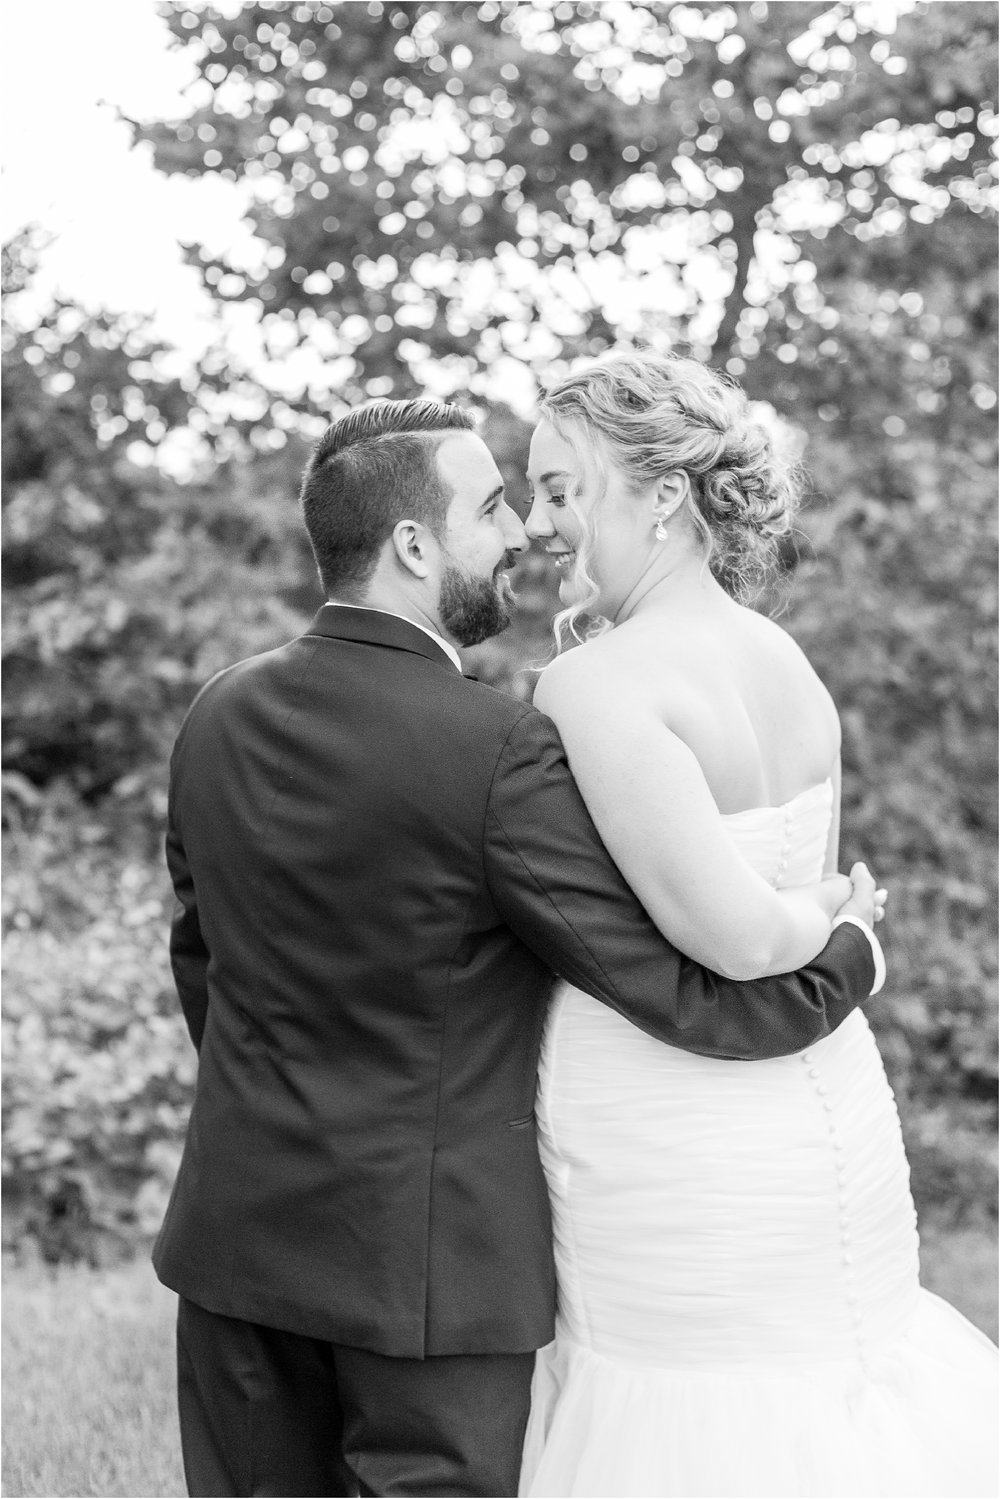 joyful-and-candid-navy-blush-wedding-photos-at-crystal-gardens-in-howell-mi-by-courtney-carolyn-photography_0116.jpg